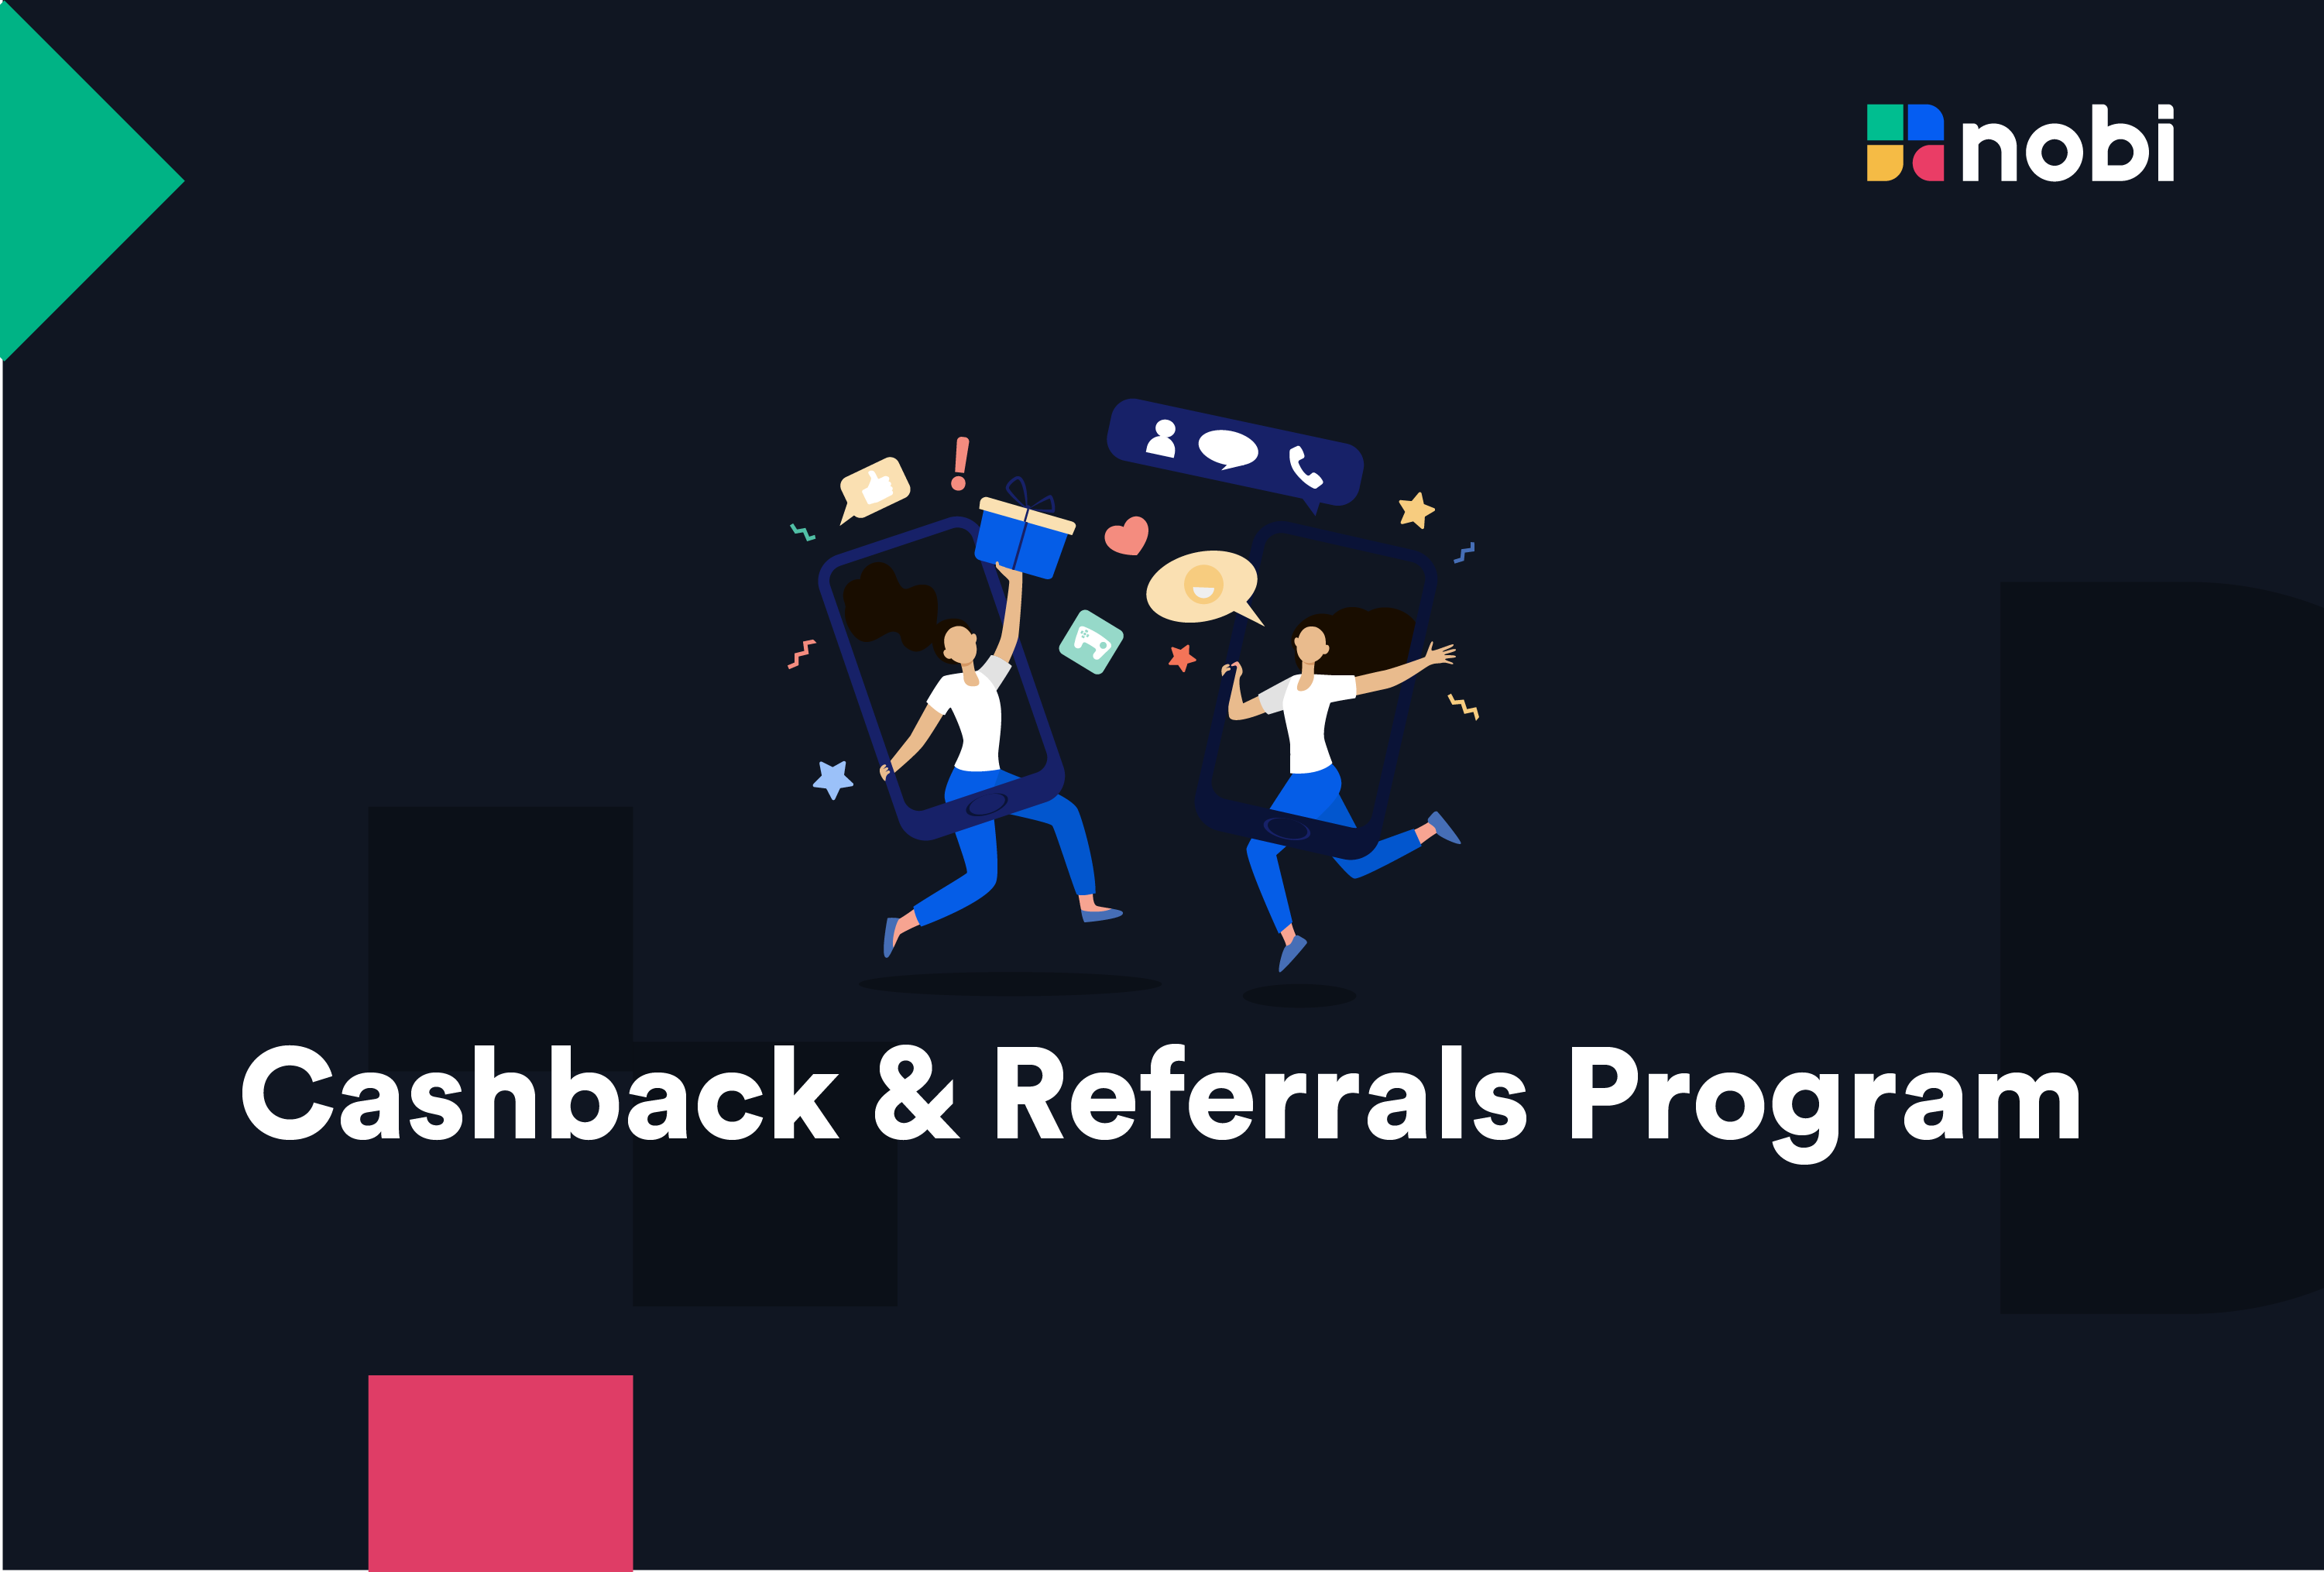 NOBI Cashback & Referral Program